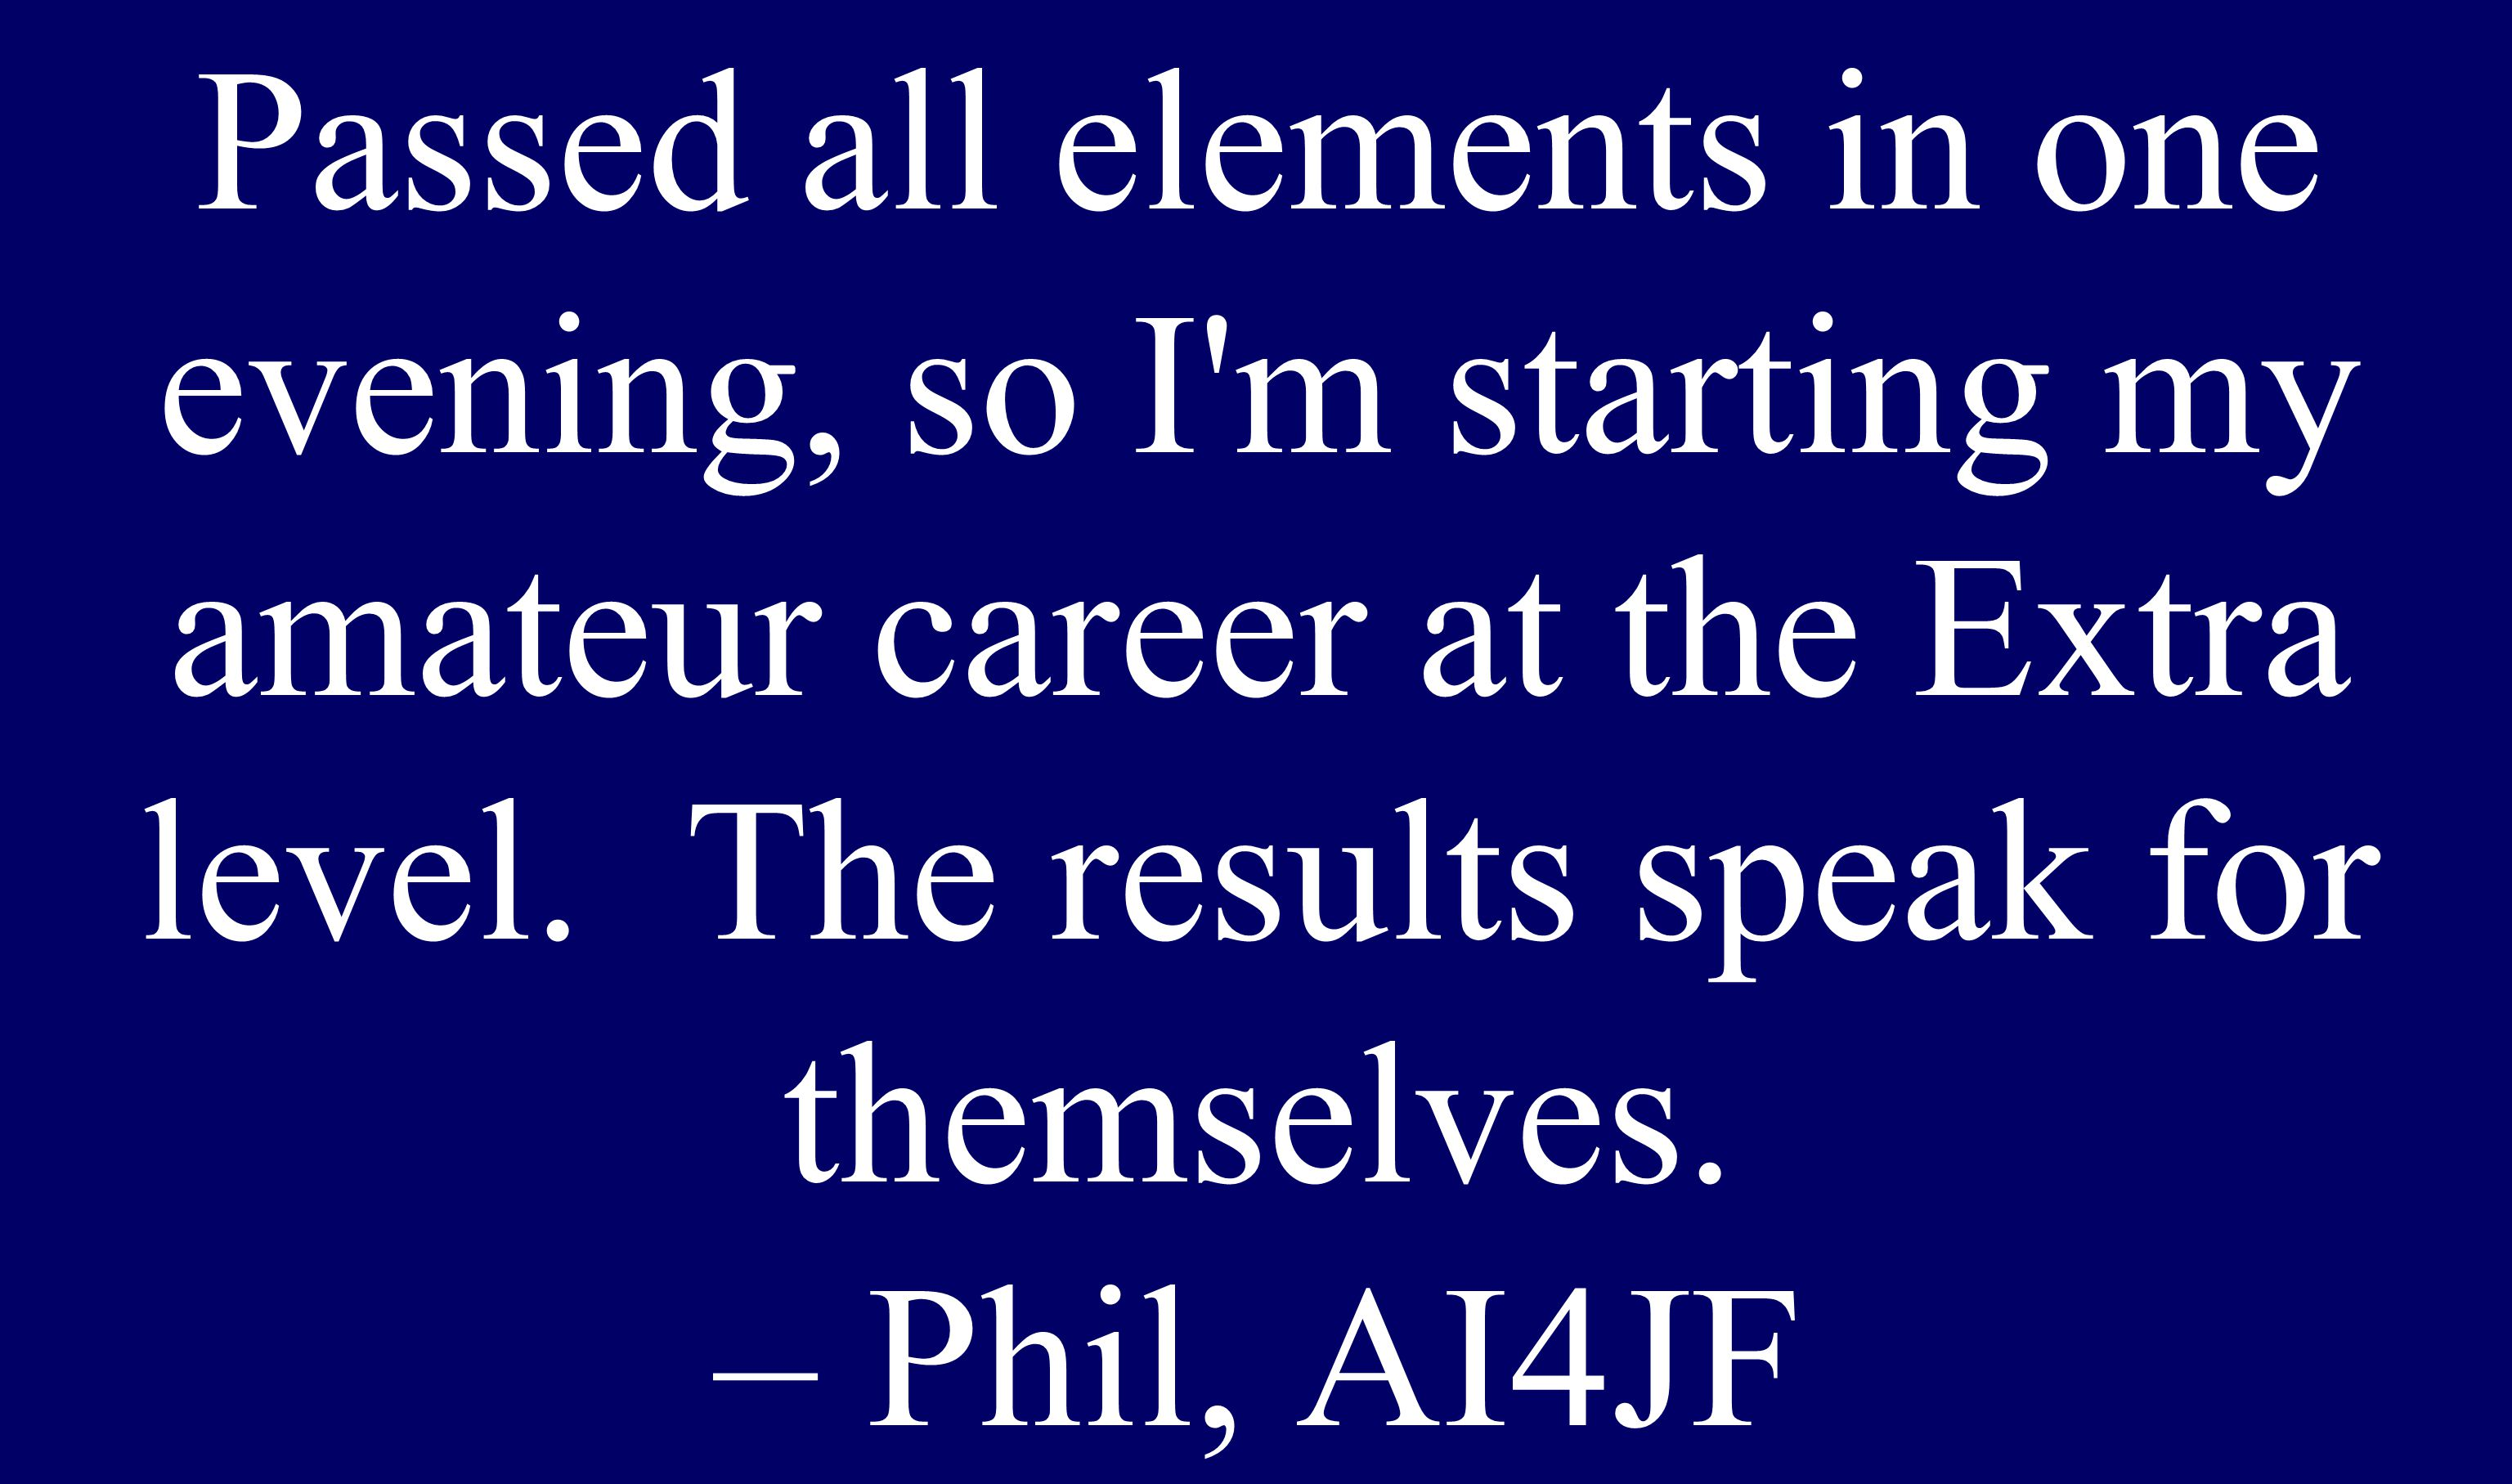 Passed all elements in one evening, so I'm starting my amateur career at the Extra level. The results speak for themselves. – Phil, AI4JF